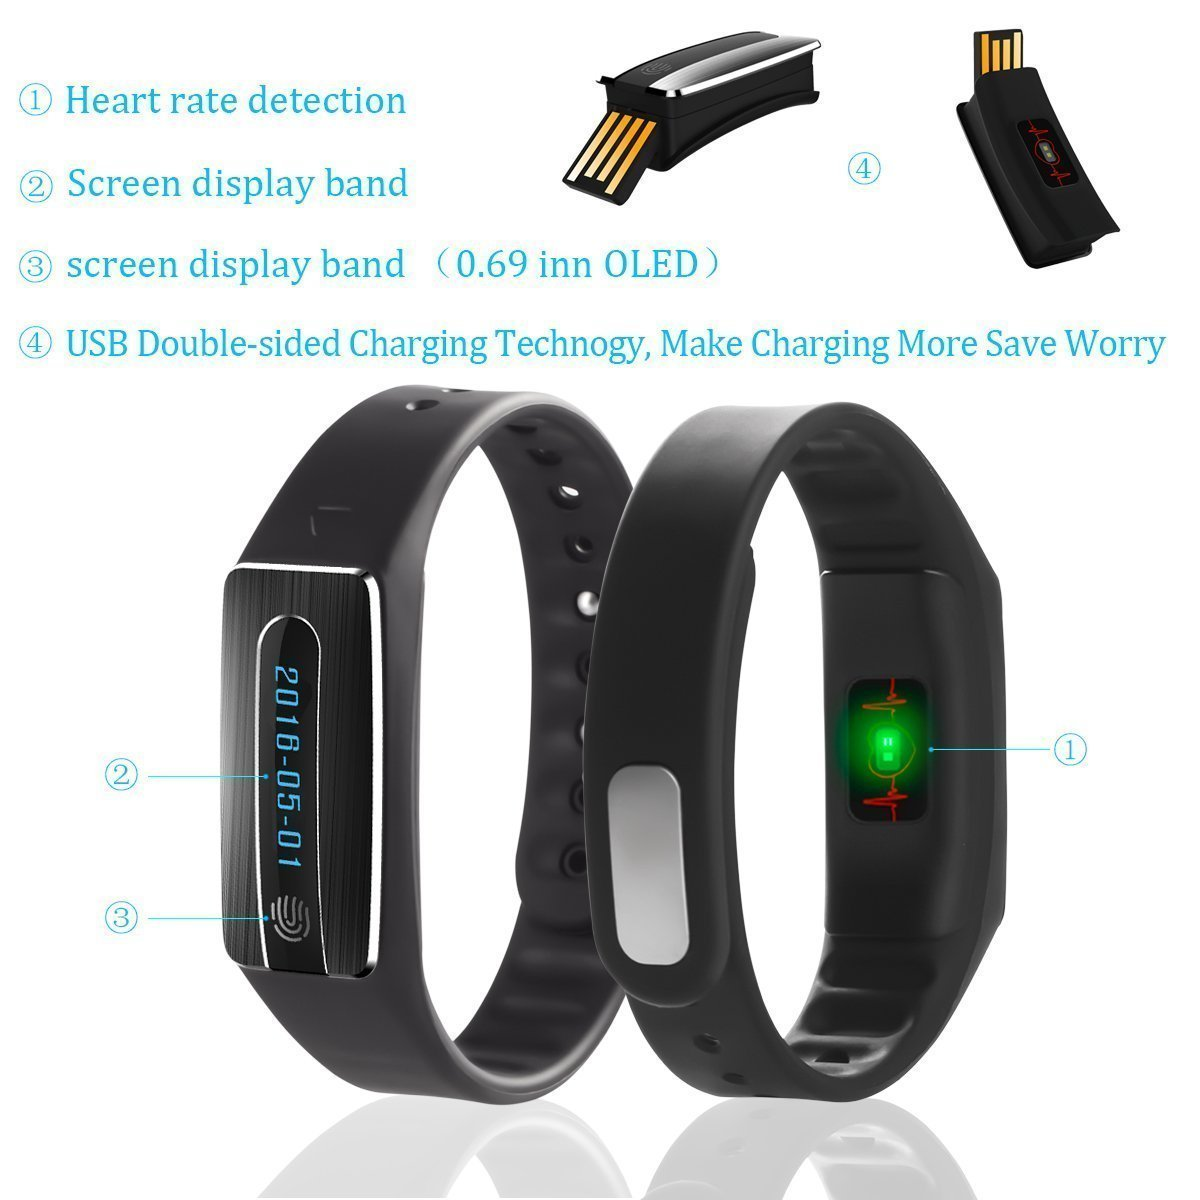 SinoPro Bluetooth Fitness Tracker Smart Bracelet Wristband with NFC Heart Rate Sleep Monitor Pedometer Activity Tracker Call Reminder Remote Capture Functions for iPhone and Android Smartphones